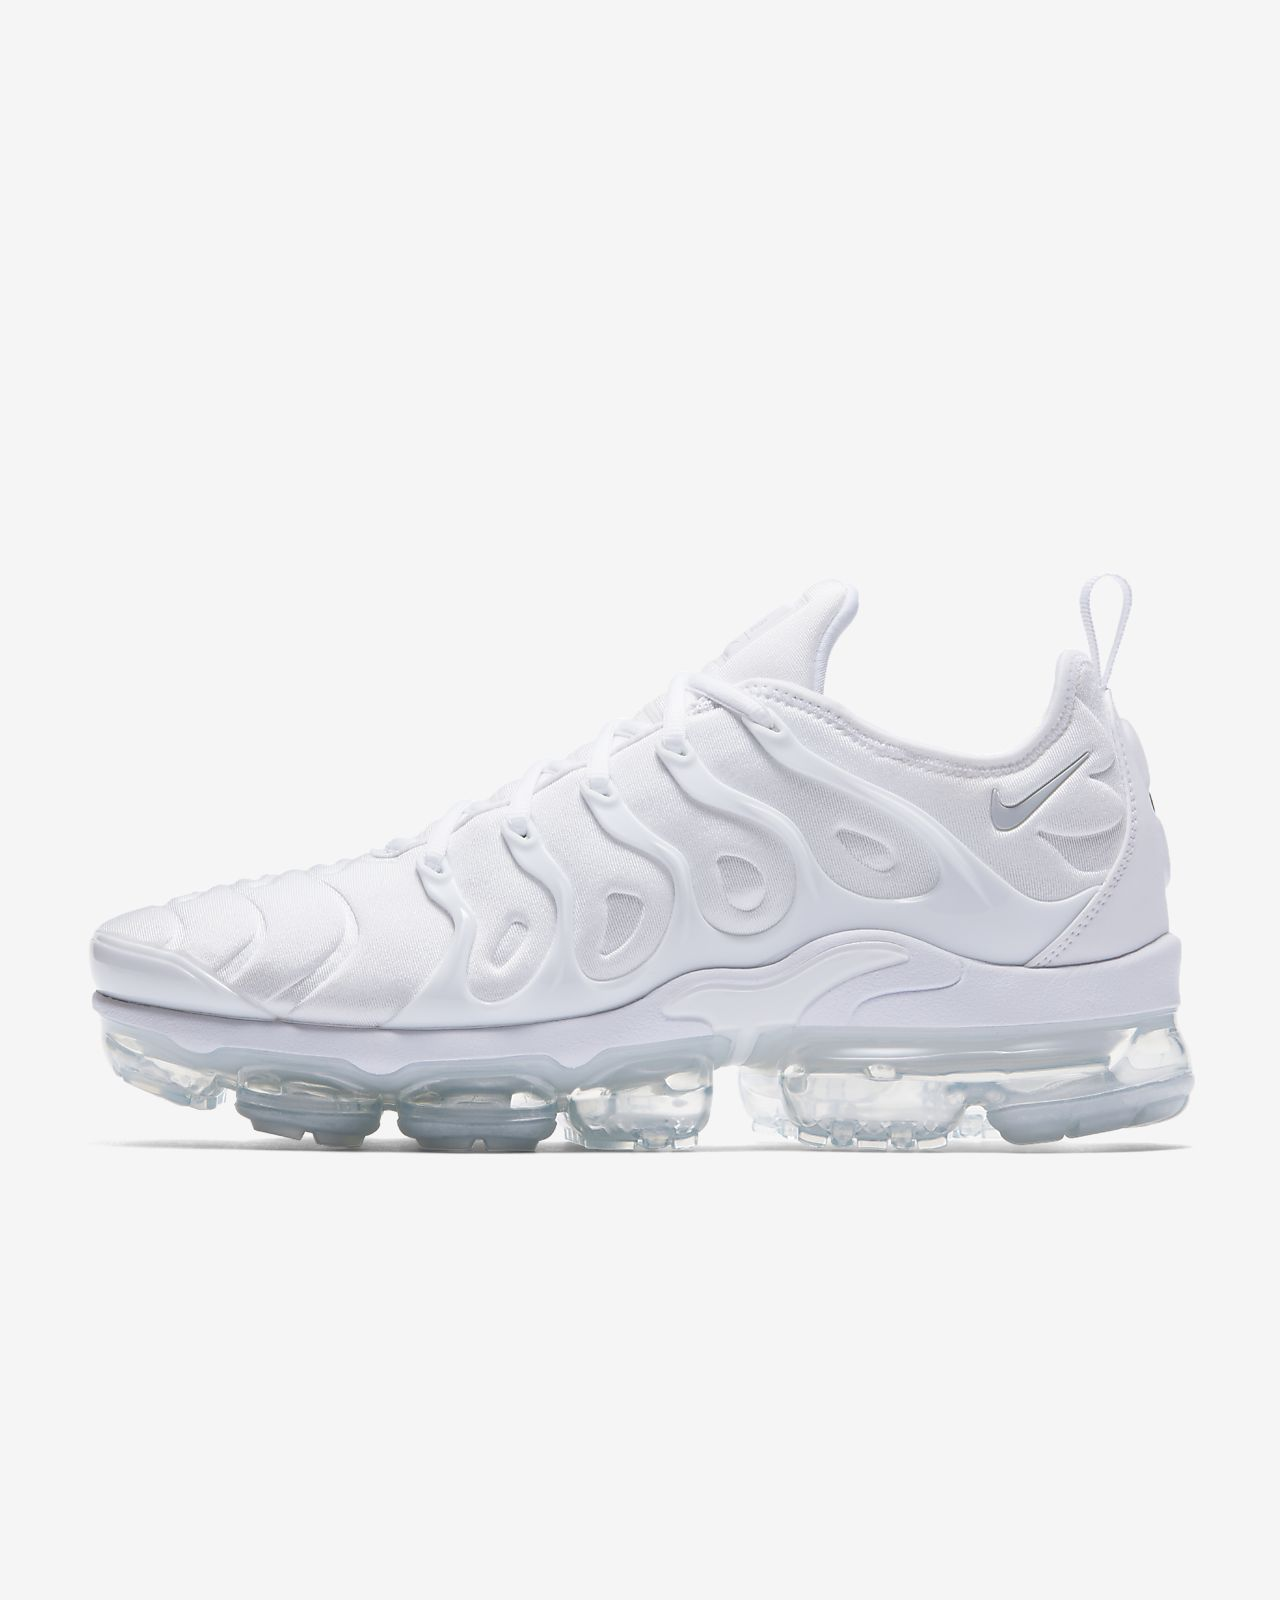 93acbd3614e Nike Air VaporMax Plus Men s Shoe. Nike.com DK